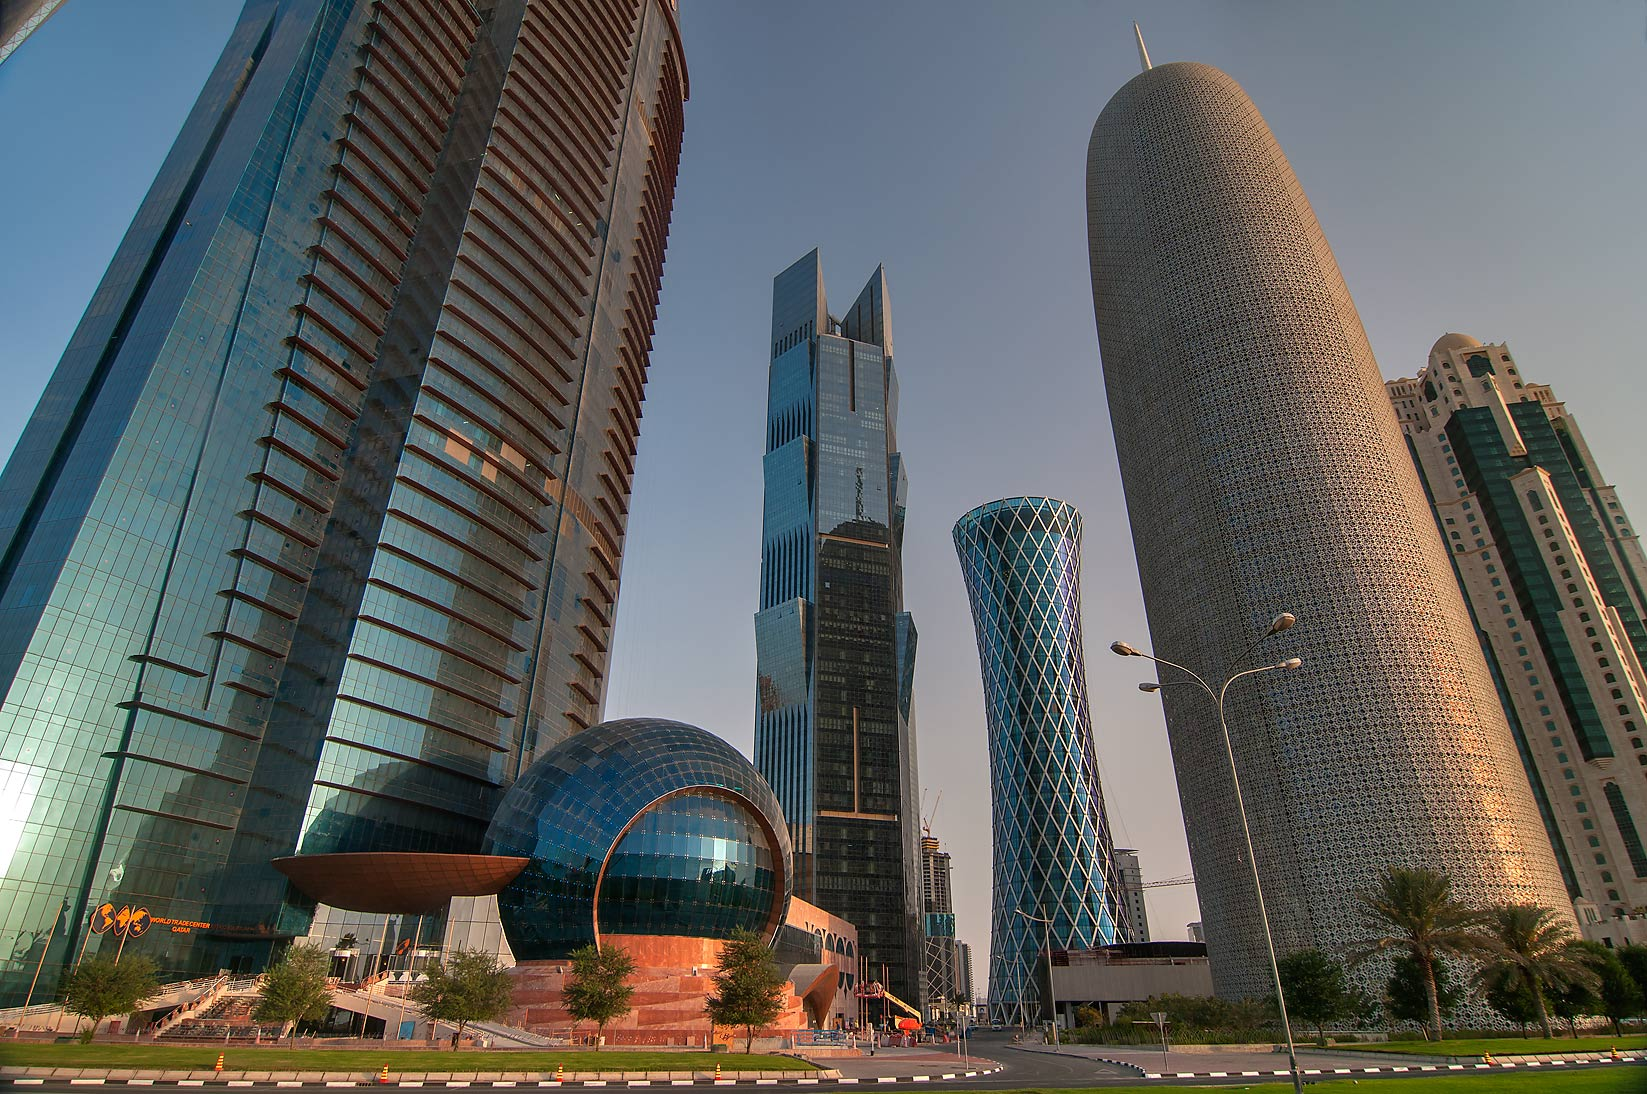 West Bay towers from Corniche promenade at sunrise. Doha, Qatar